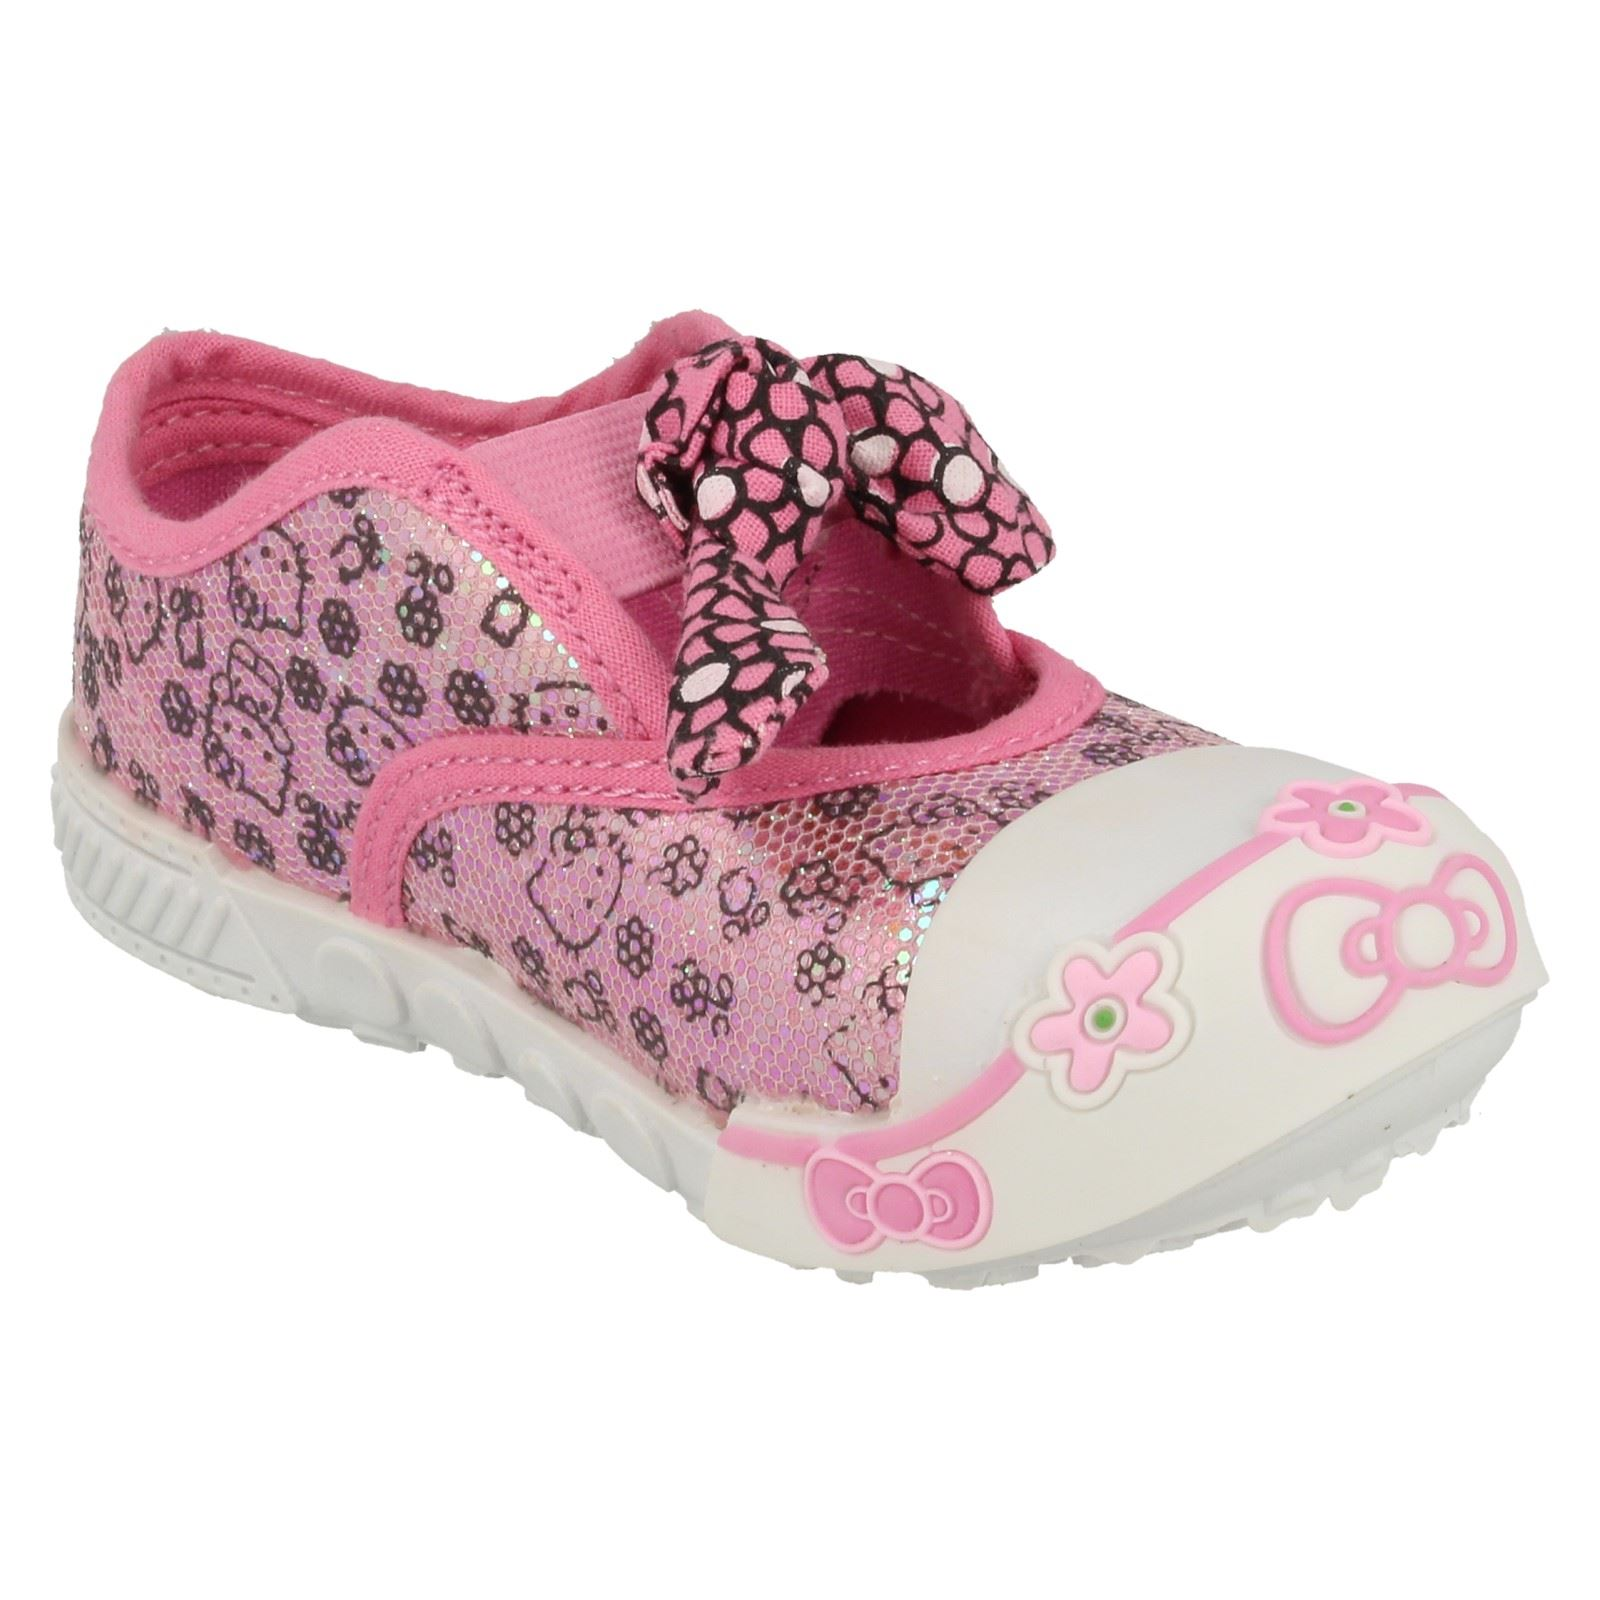 Girls Hello Kitty Oppland Canvas Shoes